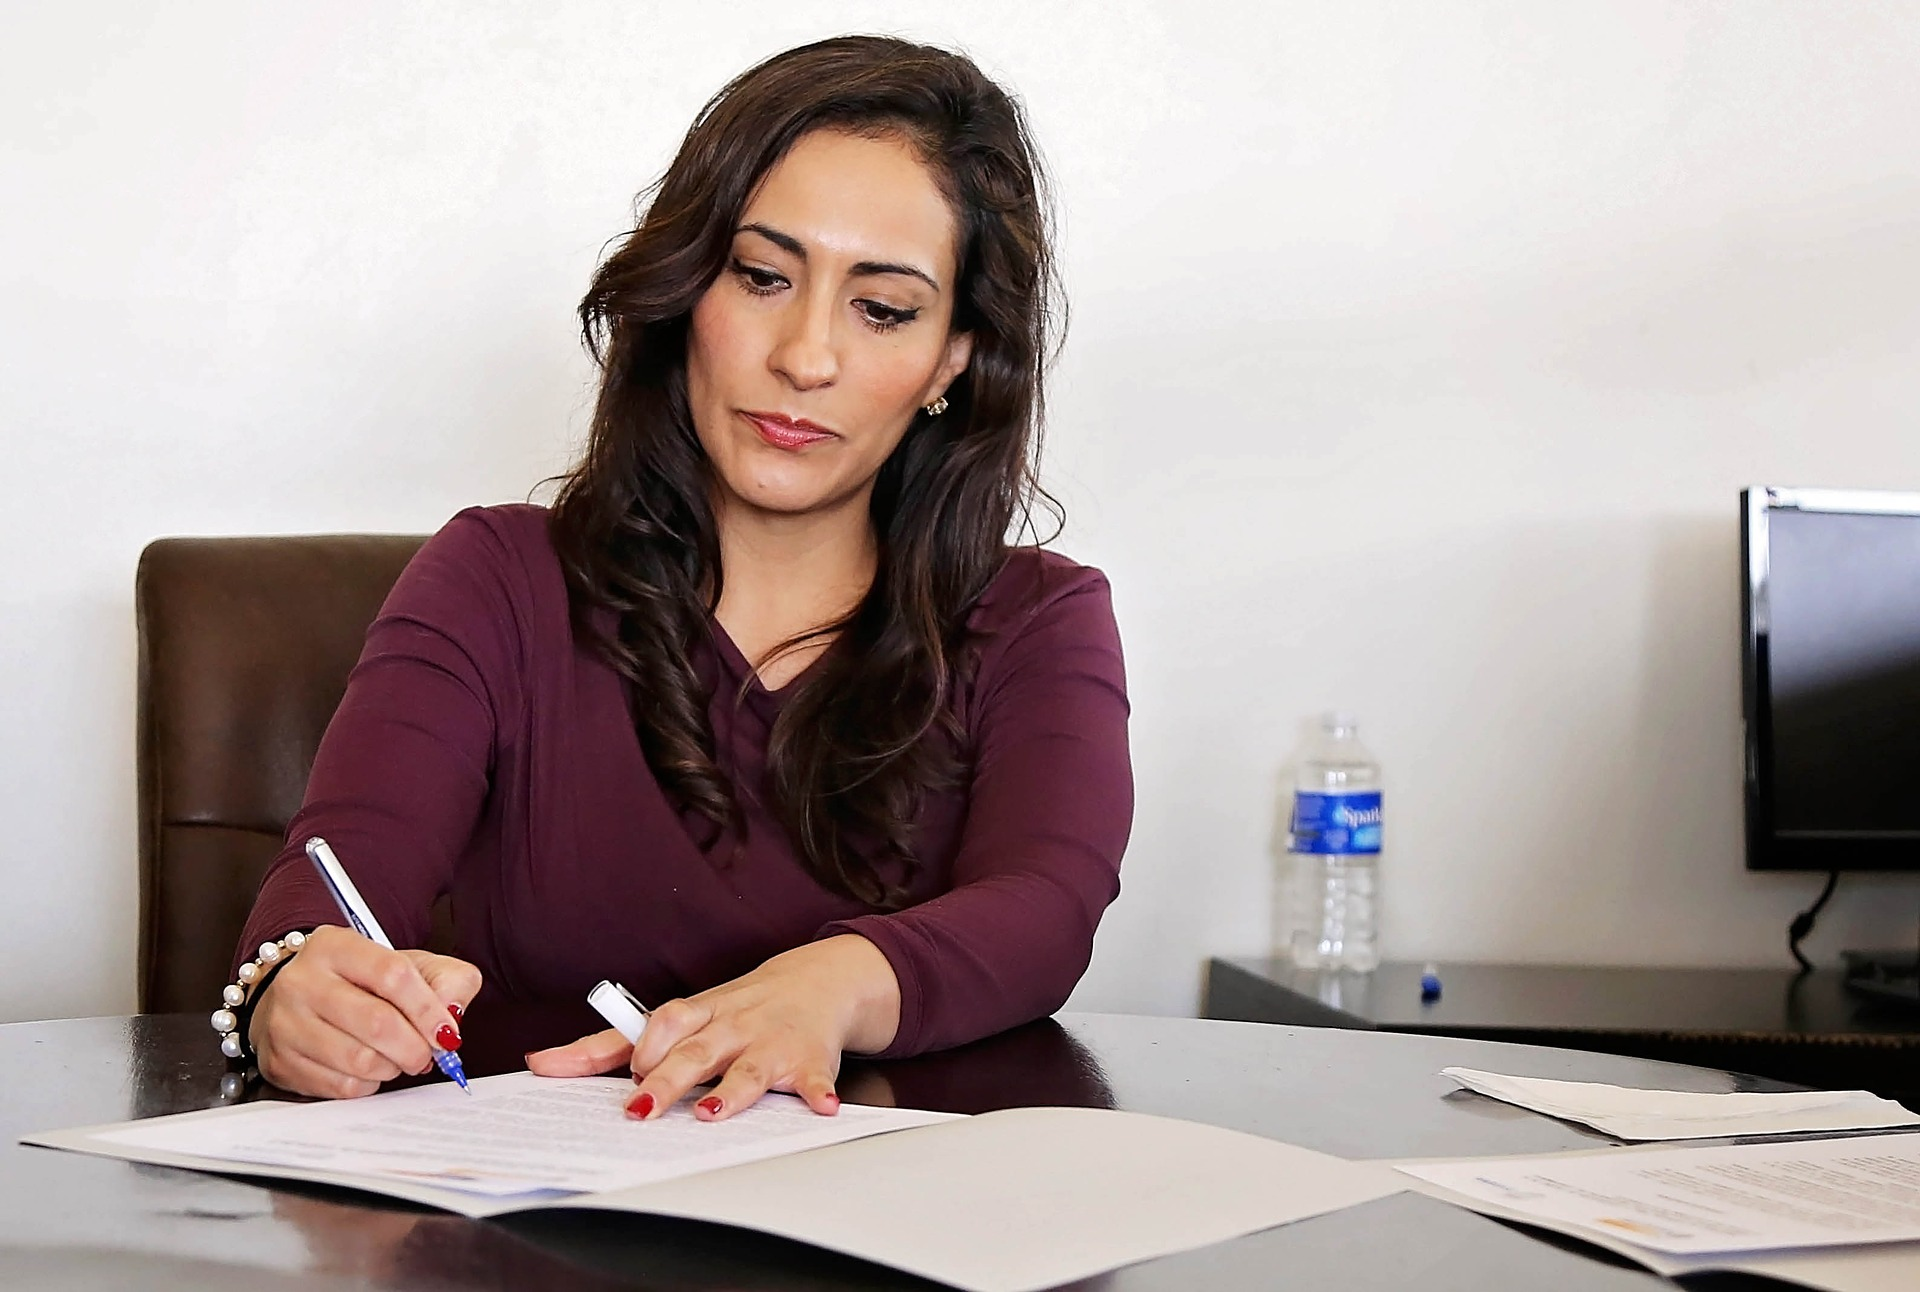 Women sitting at her desk doing paperwork